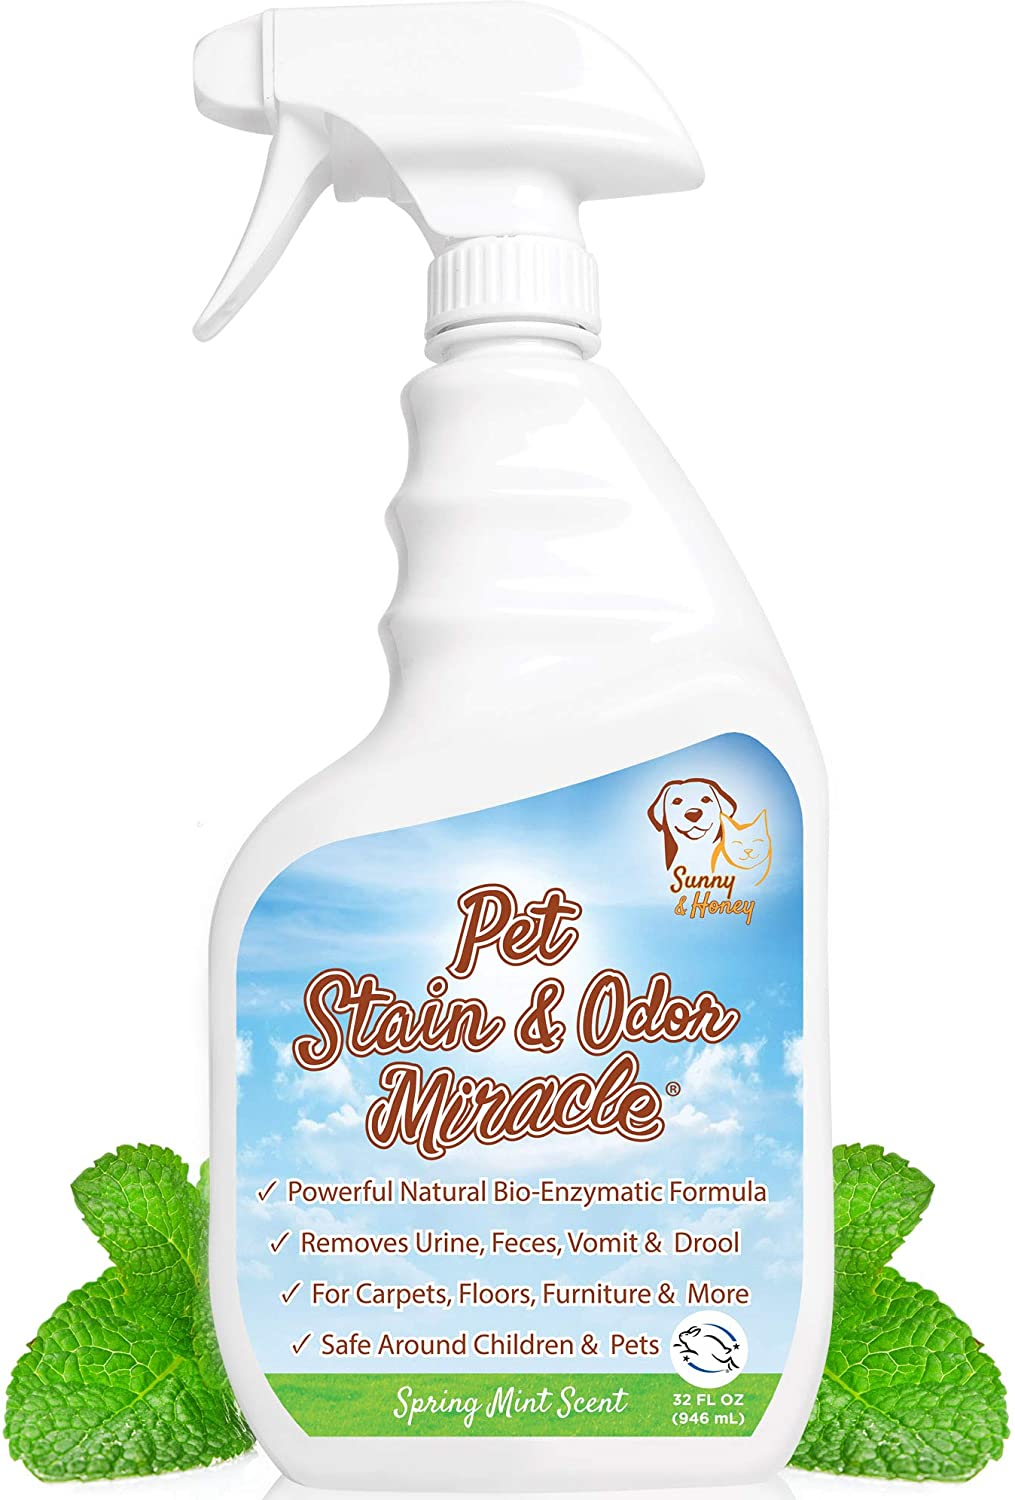 Amazon.com: Pet Stain & Odor Miracle - The Best Enzyme Cleaner for Dog Urine  Cat Pee Feces Vomit, Enzymatic Solution Cleans Carpet Rug Car Upholstery  Couch Mattress Furniture, Natural Eliminator (S/M 32FL